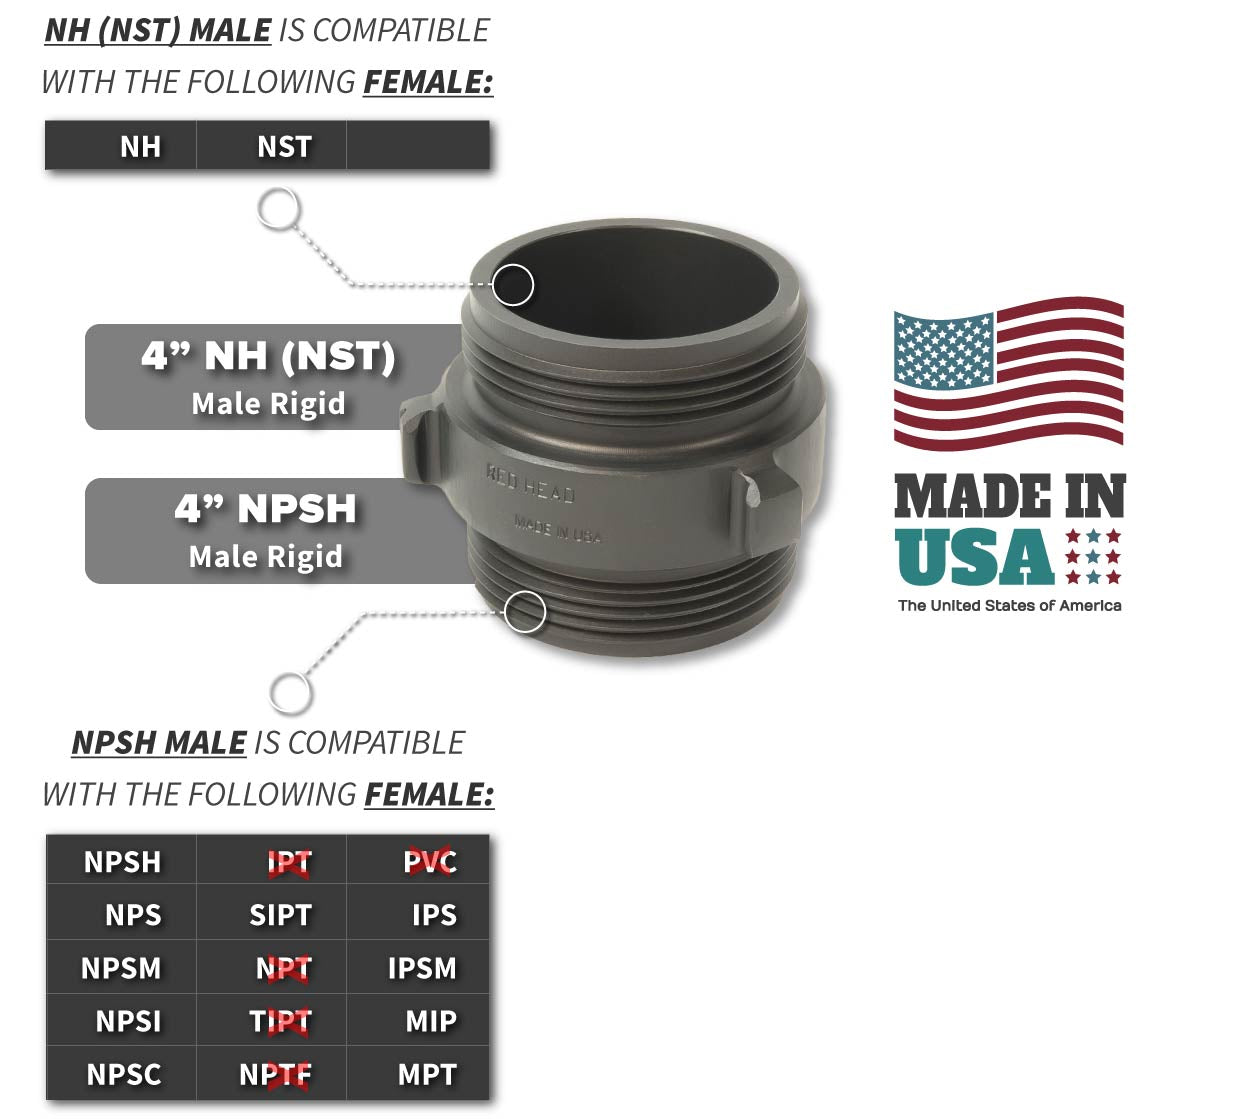 4 Inch NH-NST Male x 4 Inch NPSH Male Compatibility Thread Chart